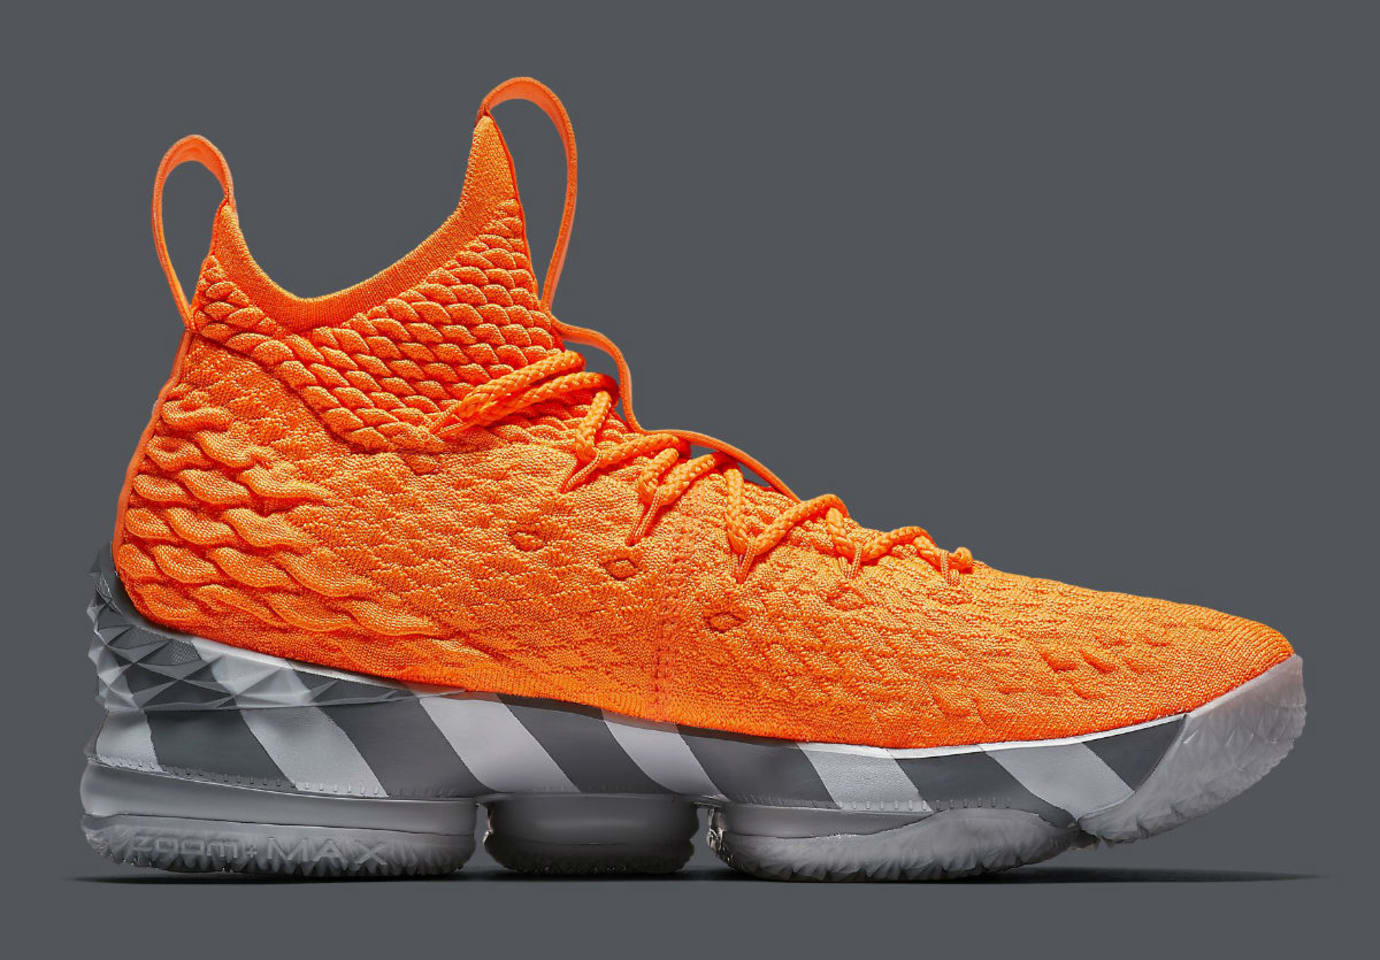 Nike LeBron 15 Orange Box Release Date AR5125-800 Medial 52b5d4e89